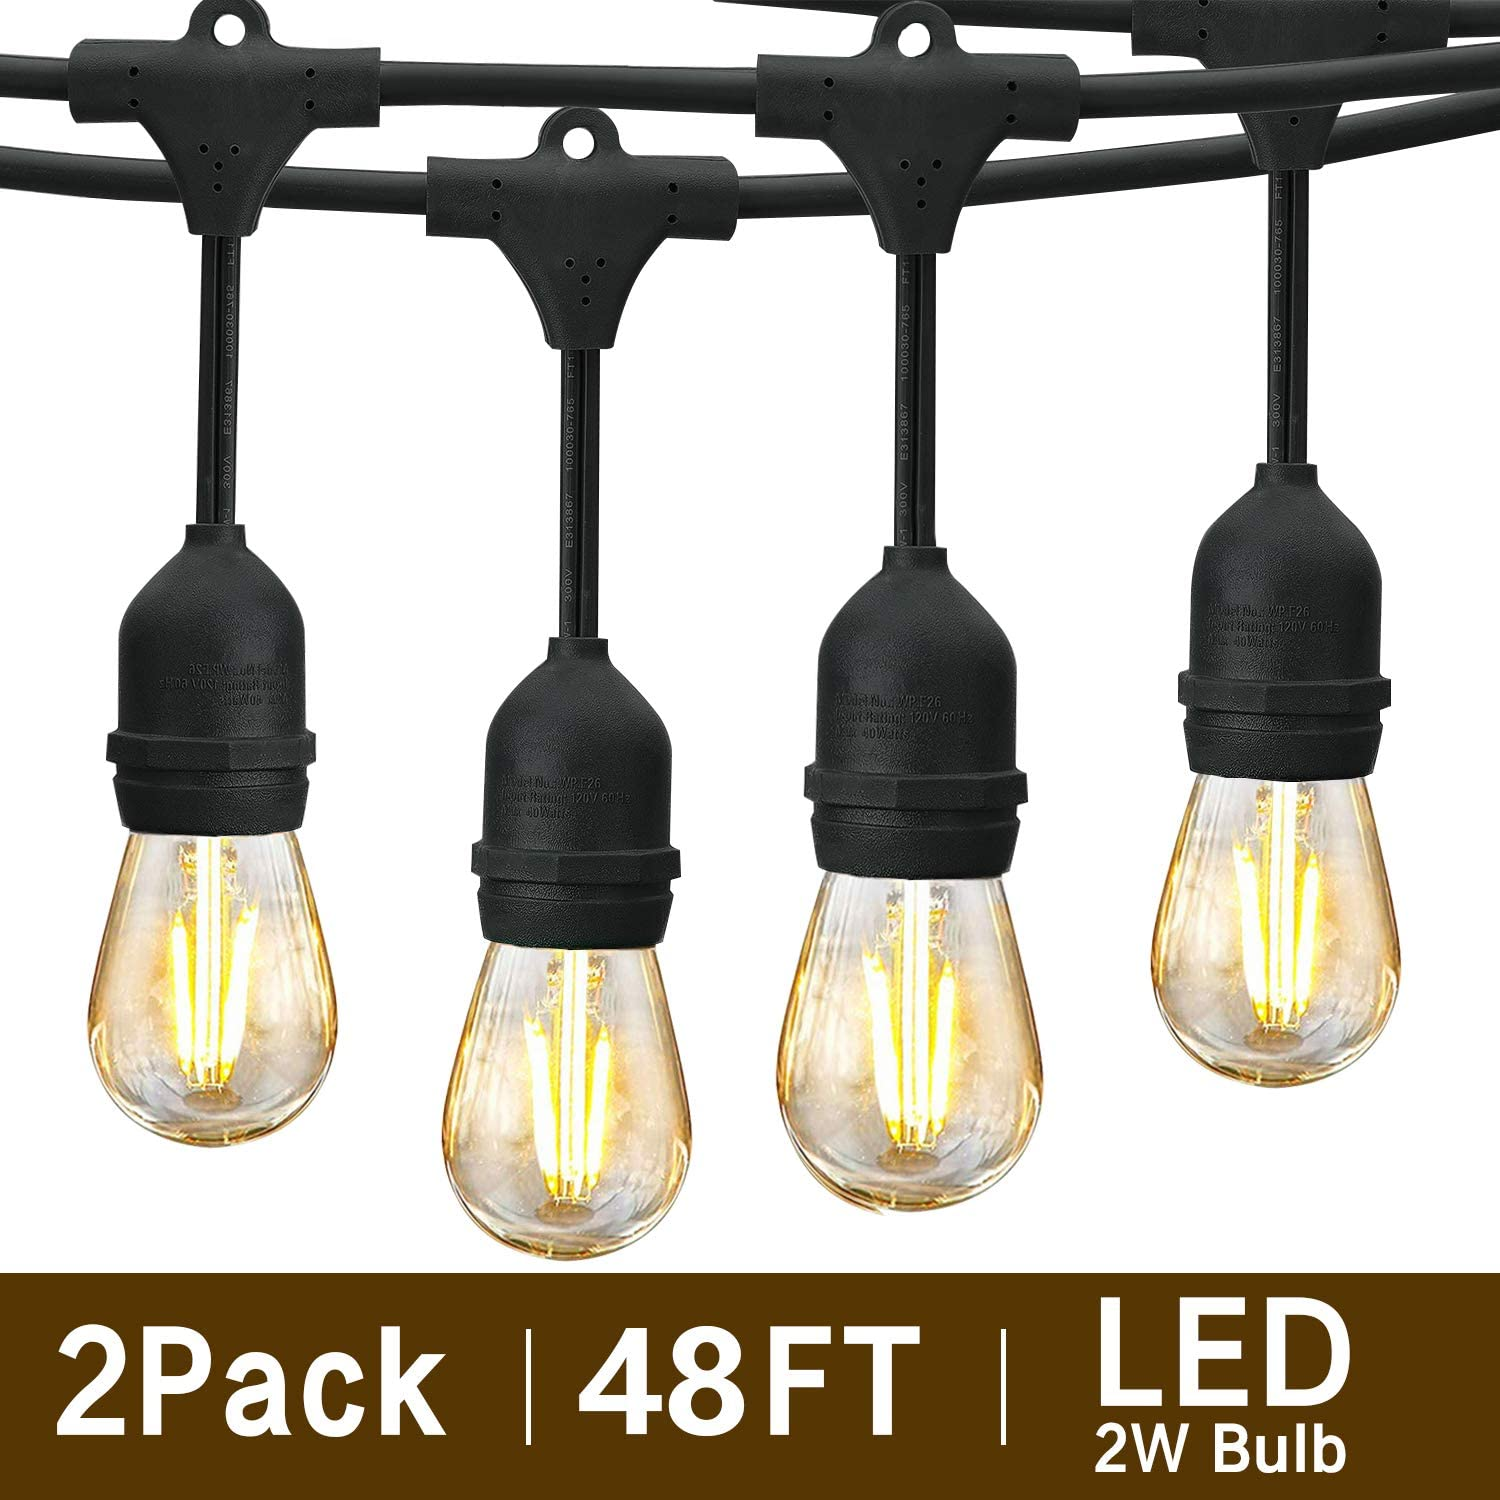 svater 96ft outdoor string lights 2pack 48ft patio lights plug in with 2w led glass bulb dimmable 2700k warm white commercial grade ip65 waterproof